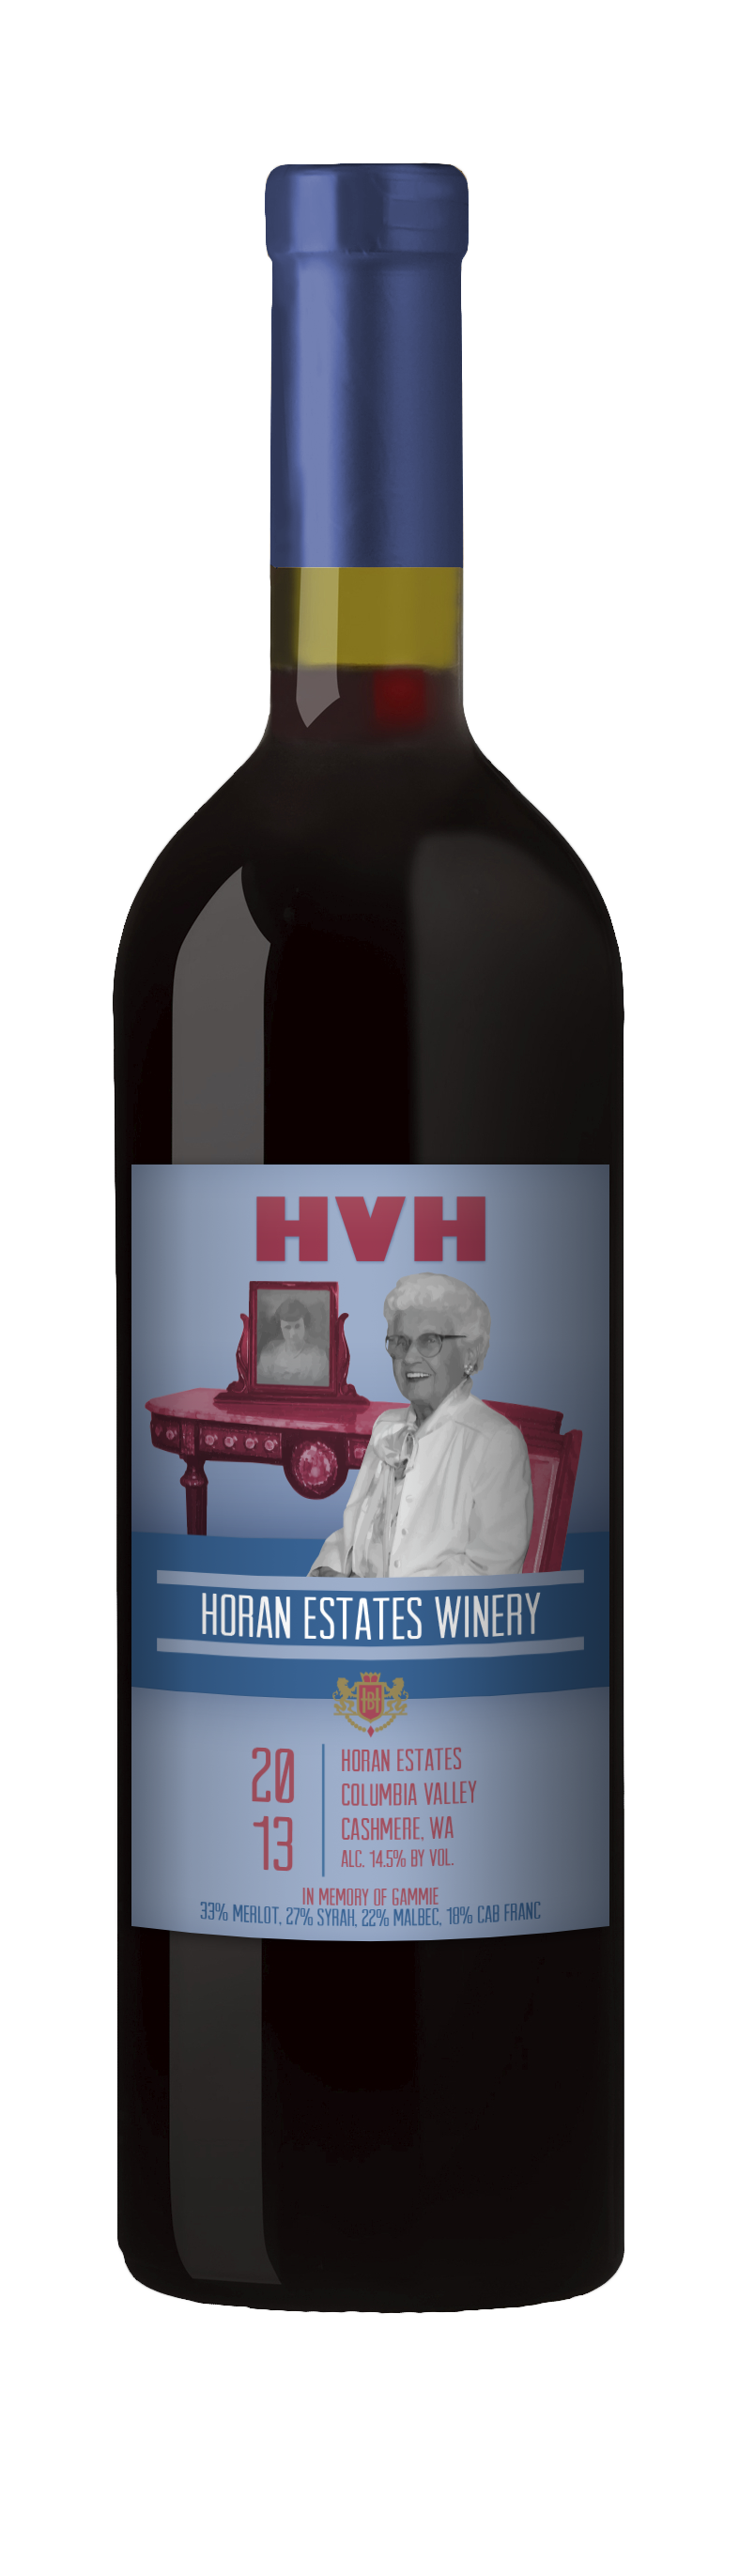 2013_hvh_bottle_shot.png